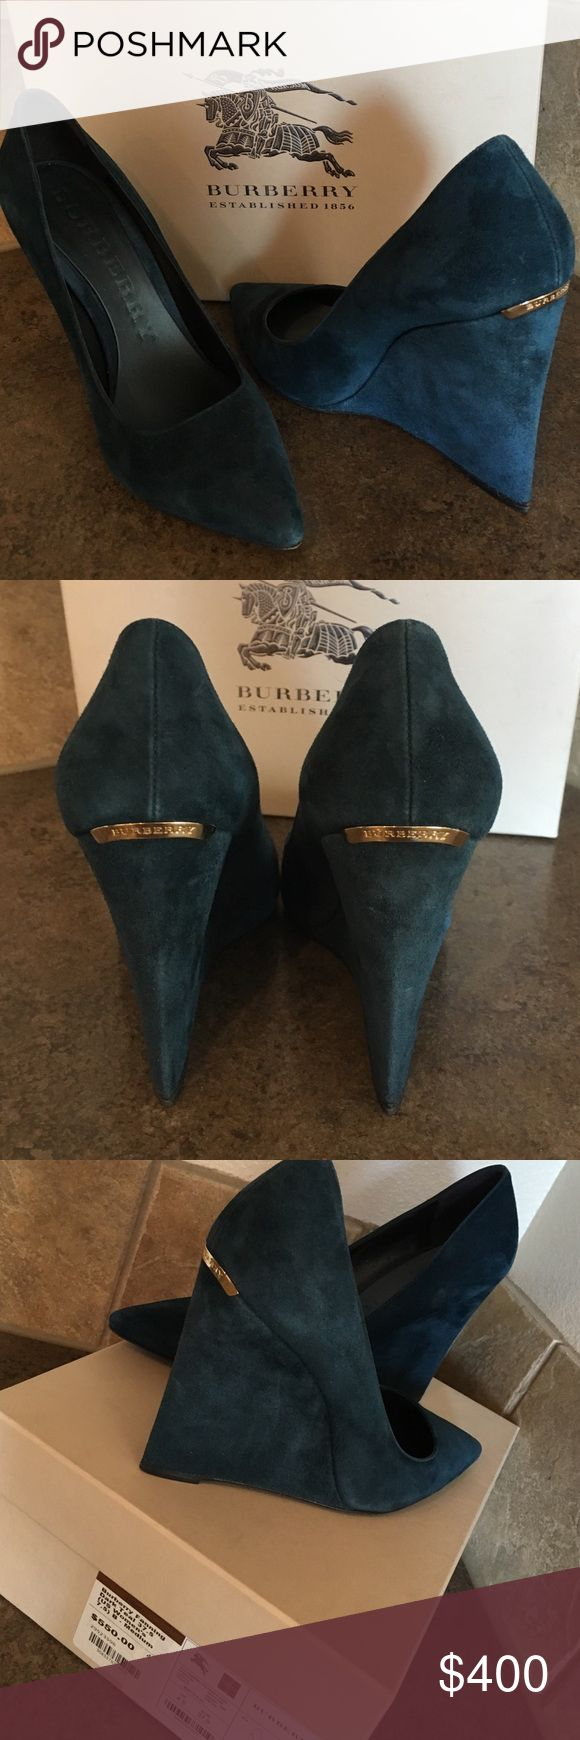 Burberry Fanning Dark Teal Wedges US size 7.5 Burberry pointed wedge pump, dark Teal suede. Worn twice to dinner. MSRP $550.00. Burberry Shoes Wedges